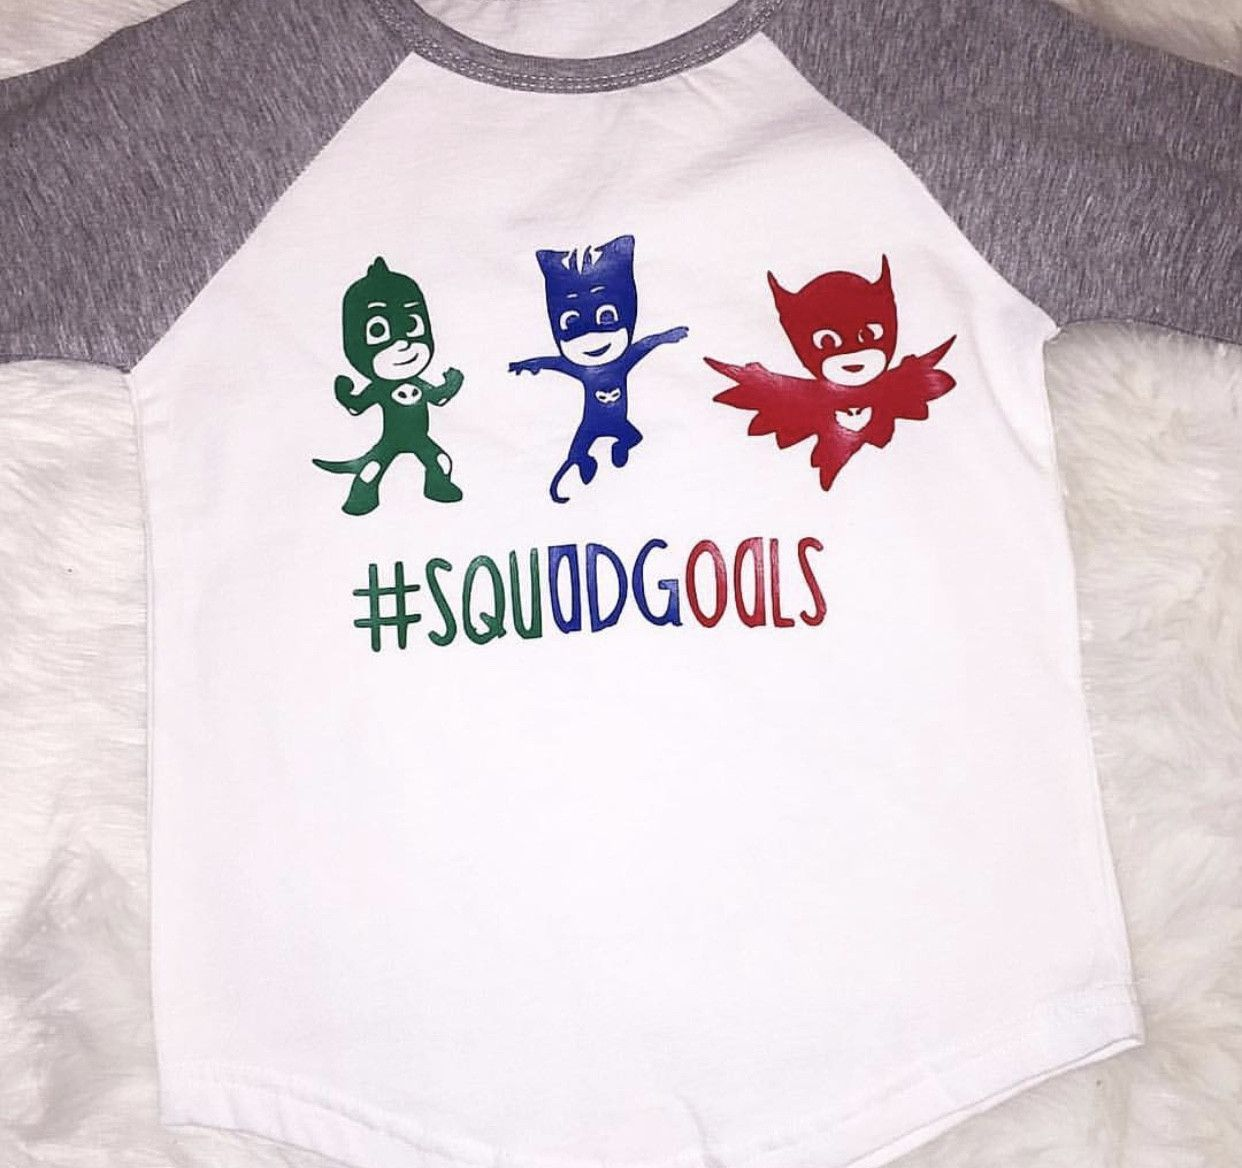 e4ebcdb7 Disney Junior PJ Mask Squad Goals Shirt | Shirt designs | Squad ...